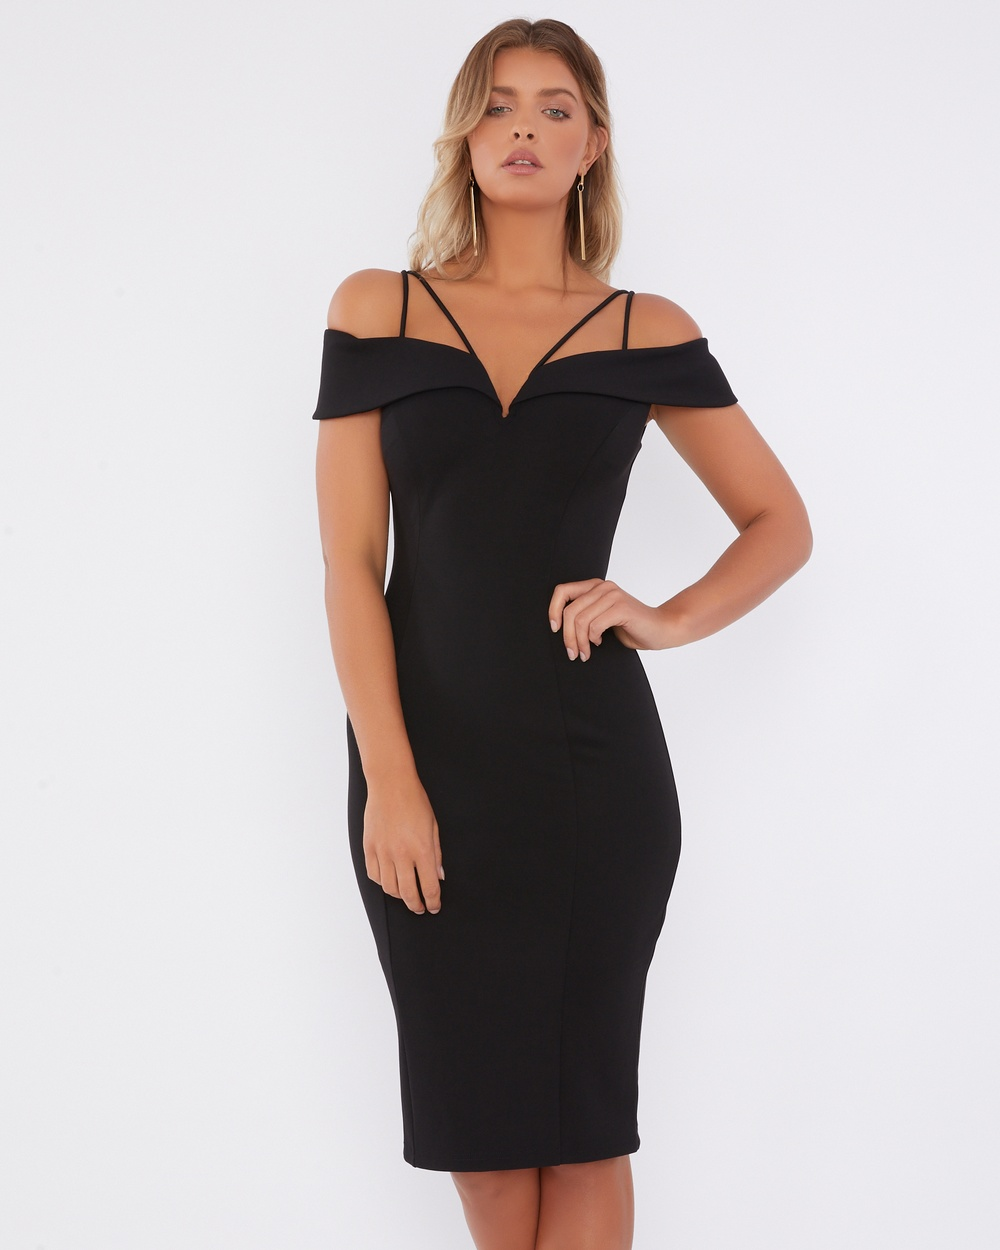 Calli Ada Off Shoulder Dress Bodycon Dresses Black Ada Off-Shoulder Dress